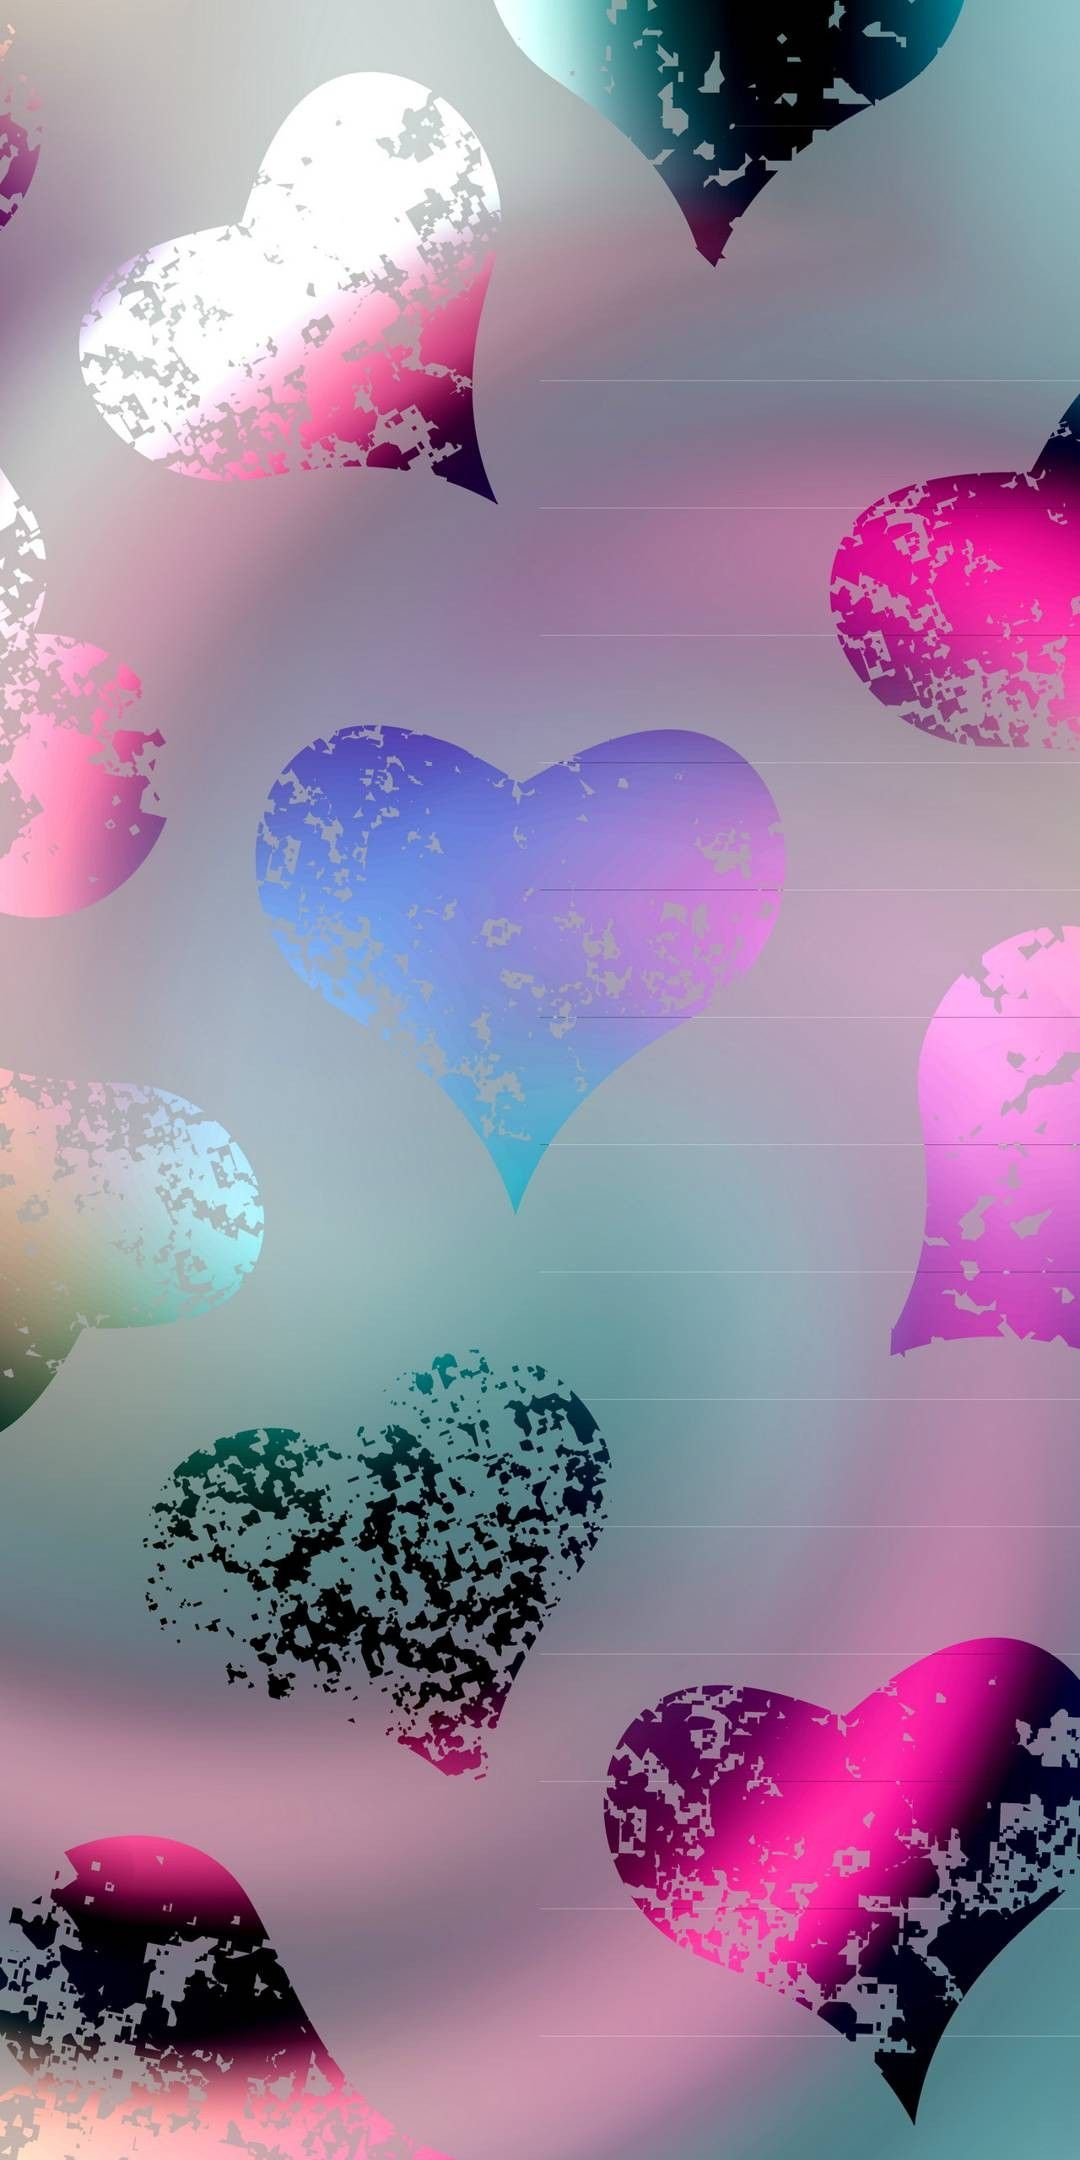 Pin By Kimberly Luiz On 01 Hearts Wallpaper Iphone Quotes Backgrounds Android Wallpaper Iphone Wallpaper